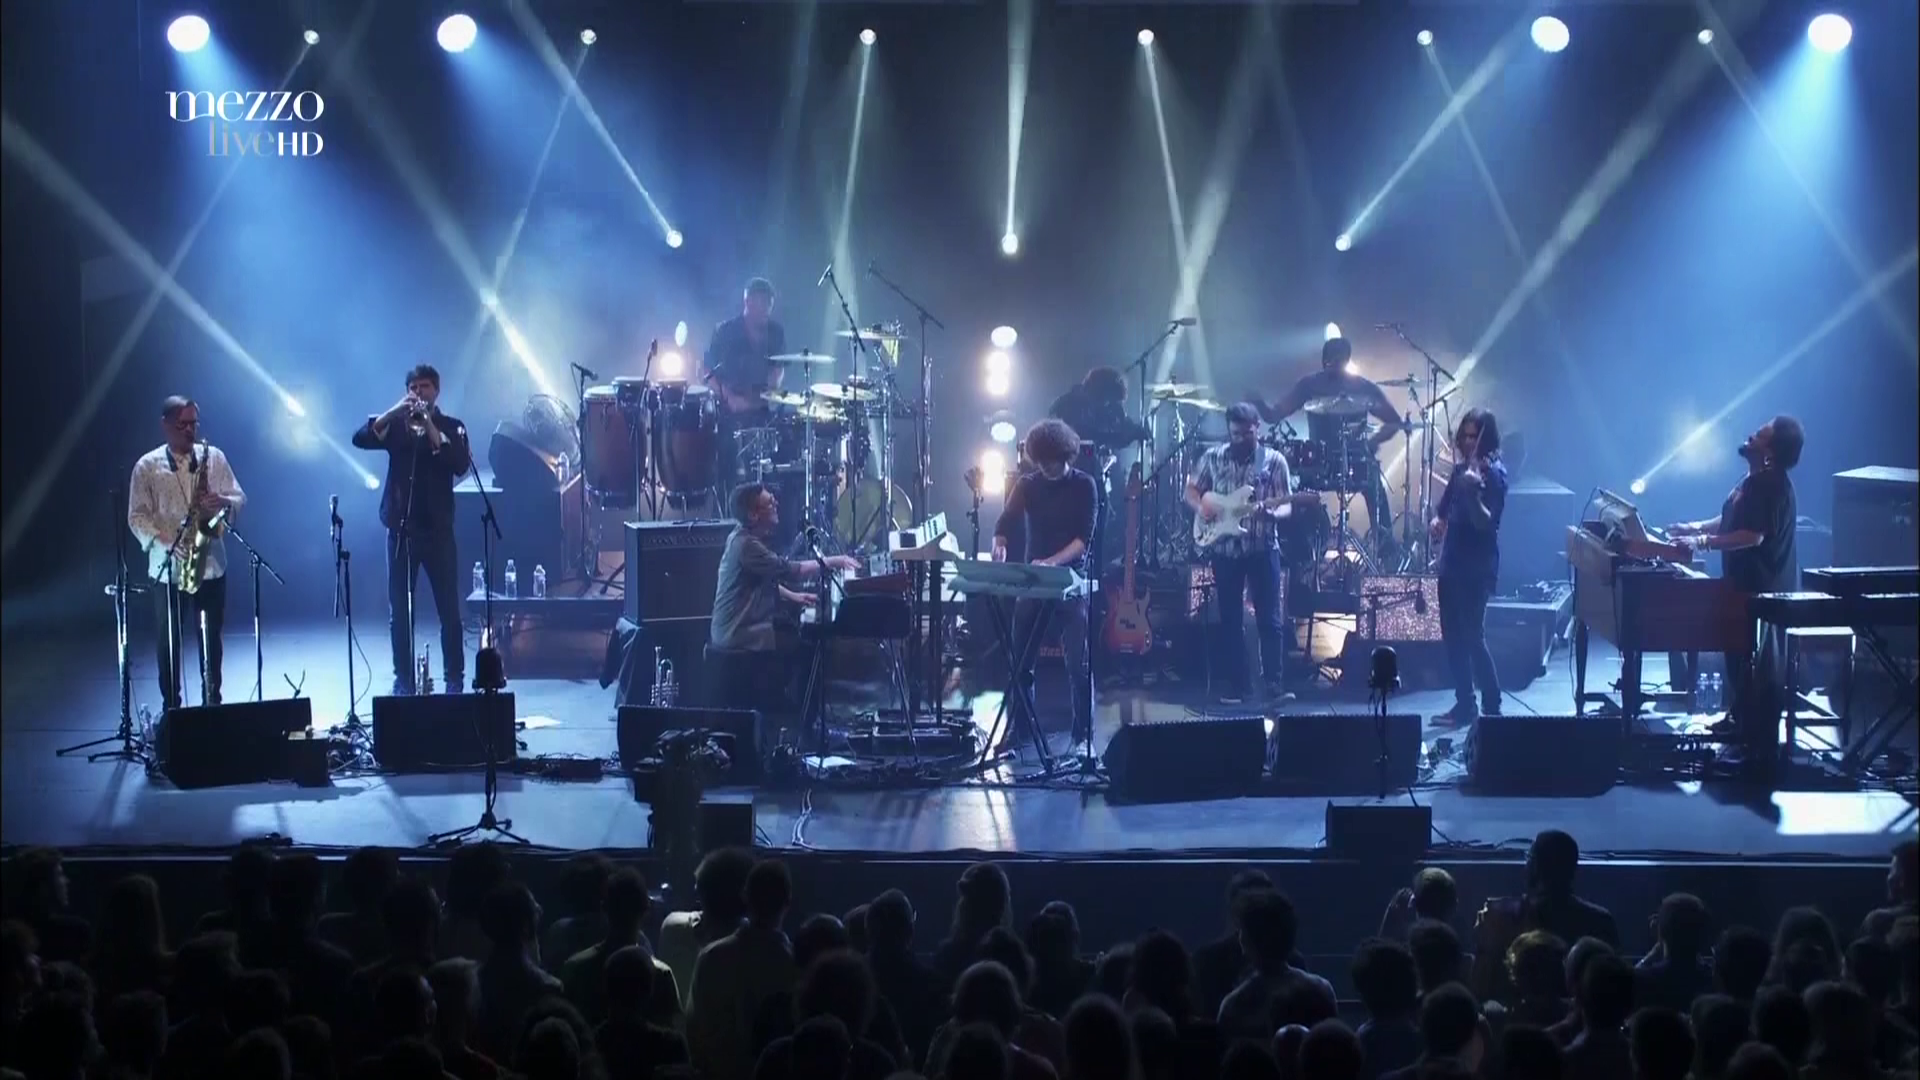 2017 Snarky Puppy - Live In Paris [HDTV 1080i] 5